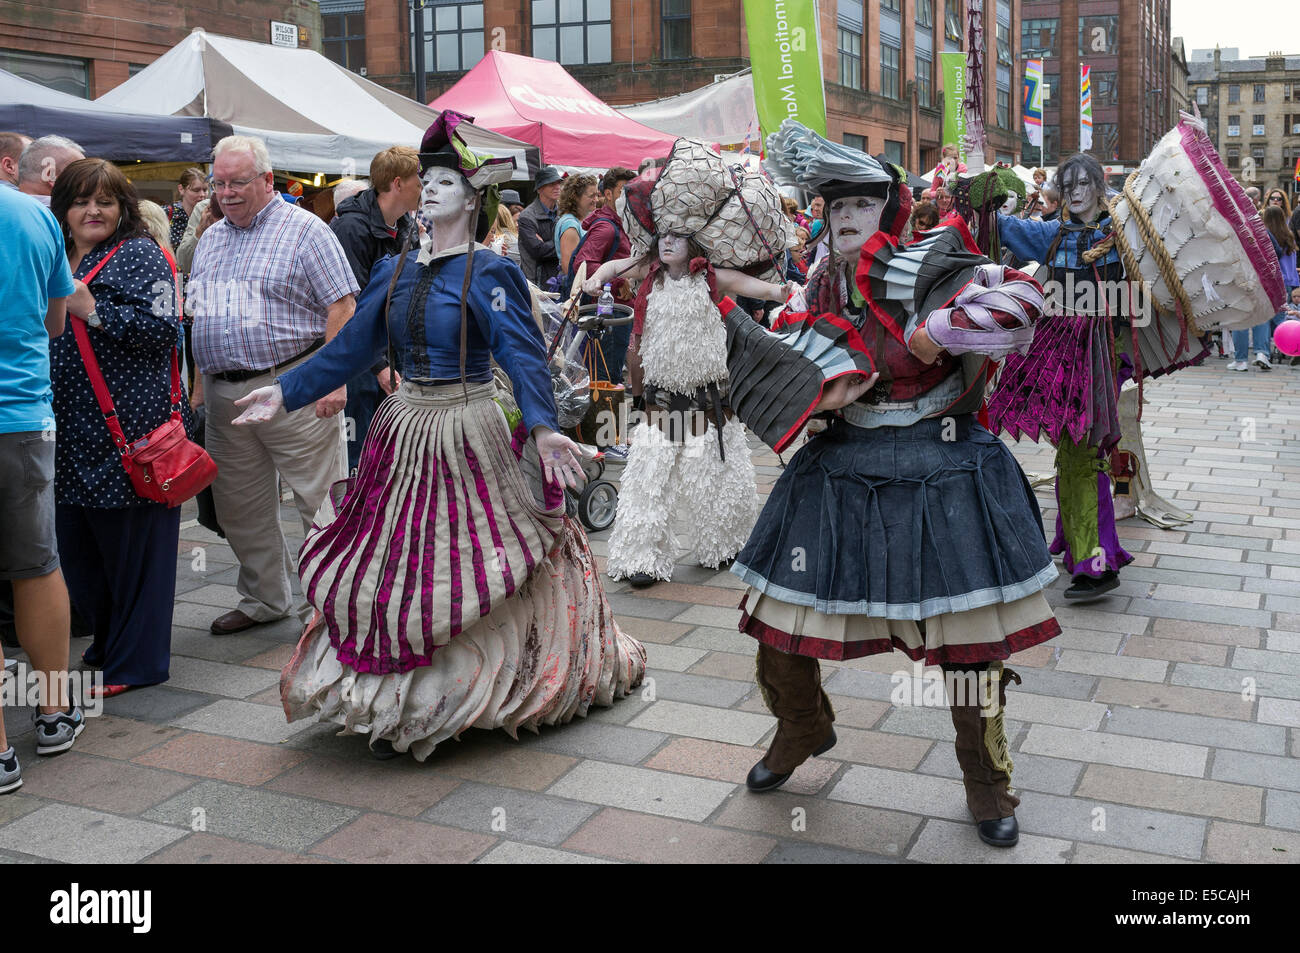 Street entertainers performing at the Merchant City festival during the Commonwealth Games, Glasgow, Scotland, UK - Stock Image